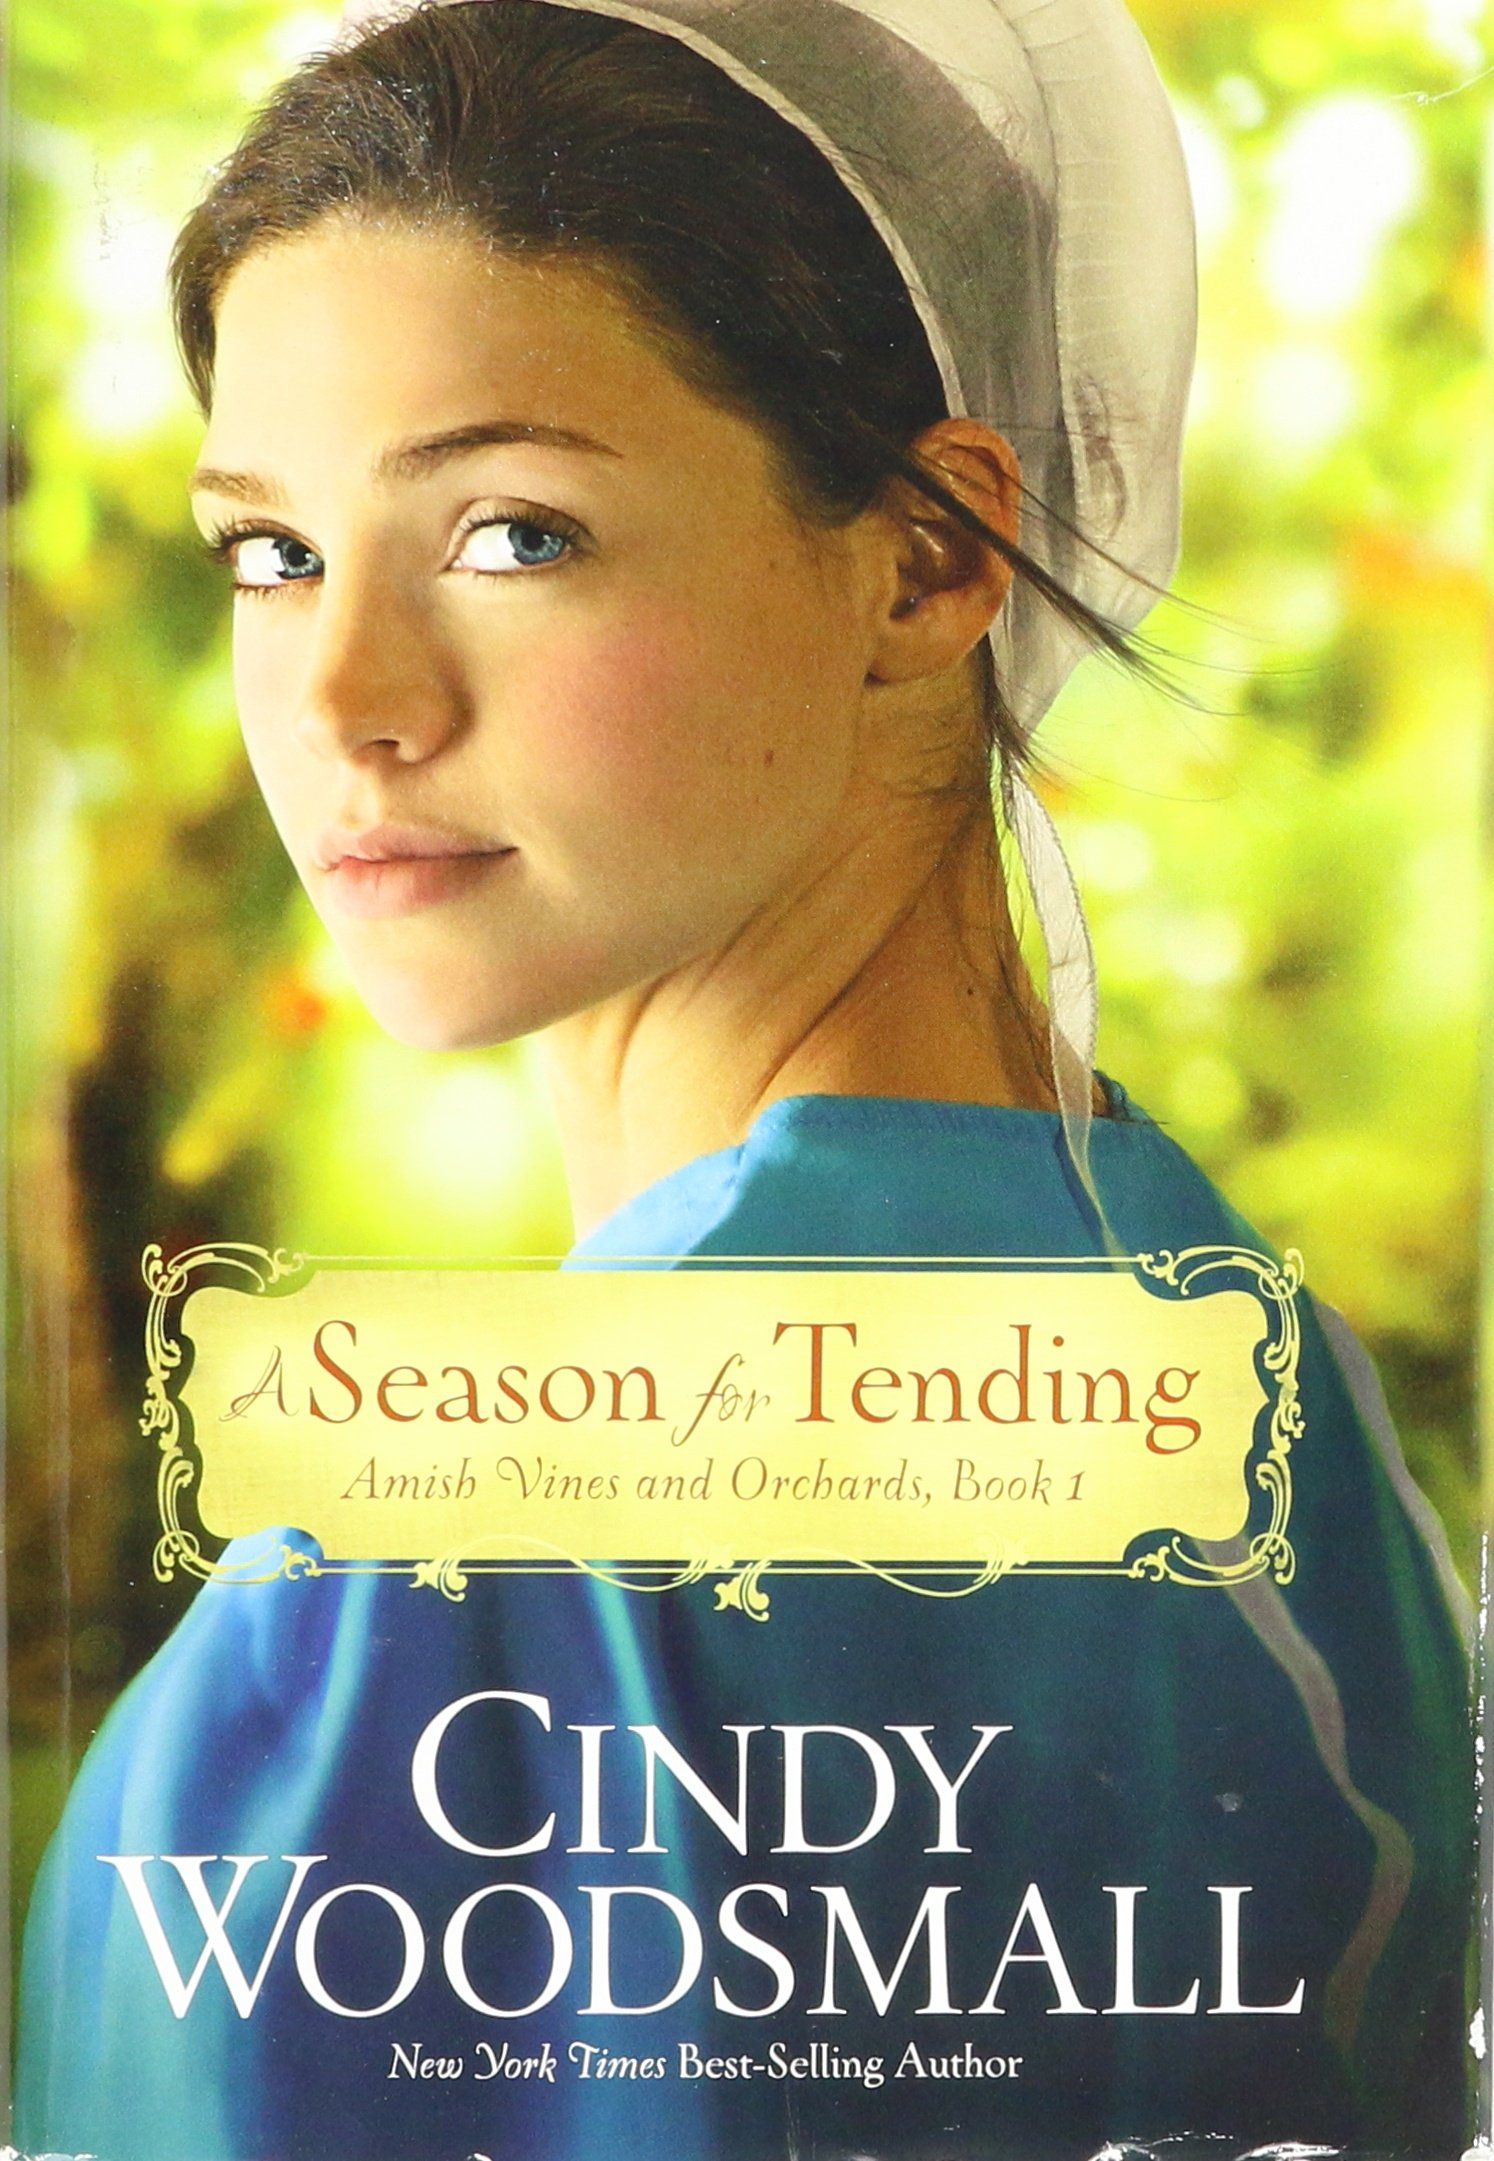 A Season for Tending: Amish Vines and Orchards, Book 1 (Large Print Home Library Edition) PDF